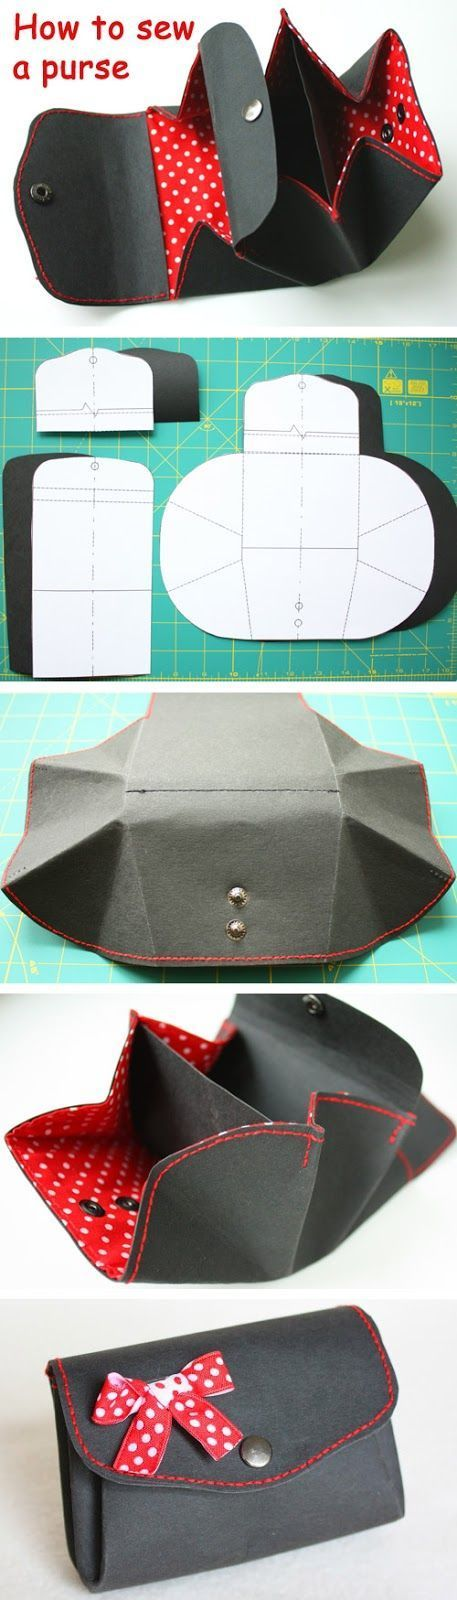 Coin purse made from Kraft-Tex paper. DIY tutorial in pictures.  http://www.handmadiya.com/2015/10/purse-kraft-tex-fabric-tutorial.html - small purses for ladies, women's leather purses, women's purses for sale *sponsored https://www.pinterest.com/purses_handbags/ https://www.pinterest.com/explore/purses/ https://www.pinterest.com/purses_handbags/brighton-purses/ http://us.christianlouboutin.com/us_en/shop-online-3/women-1/leather-goods/handbags.html